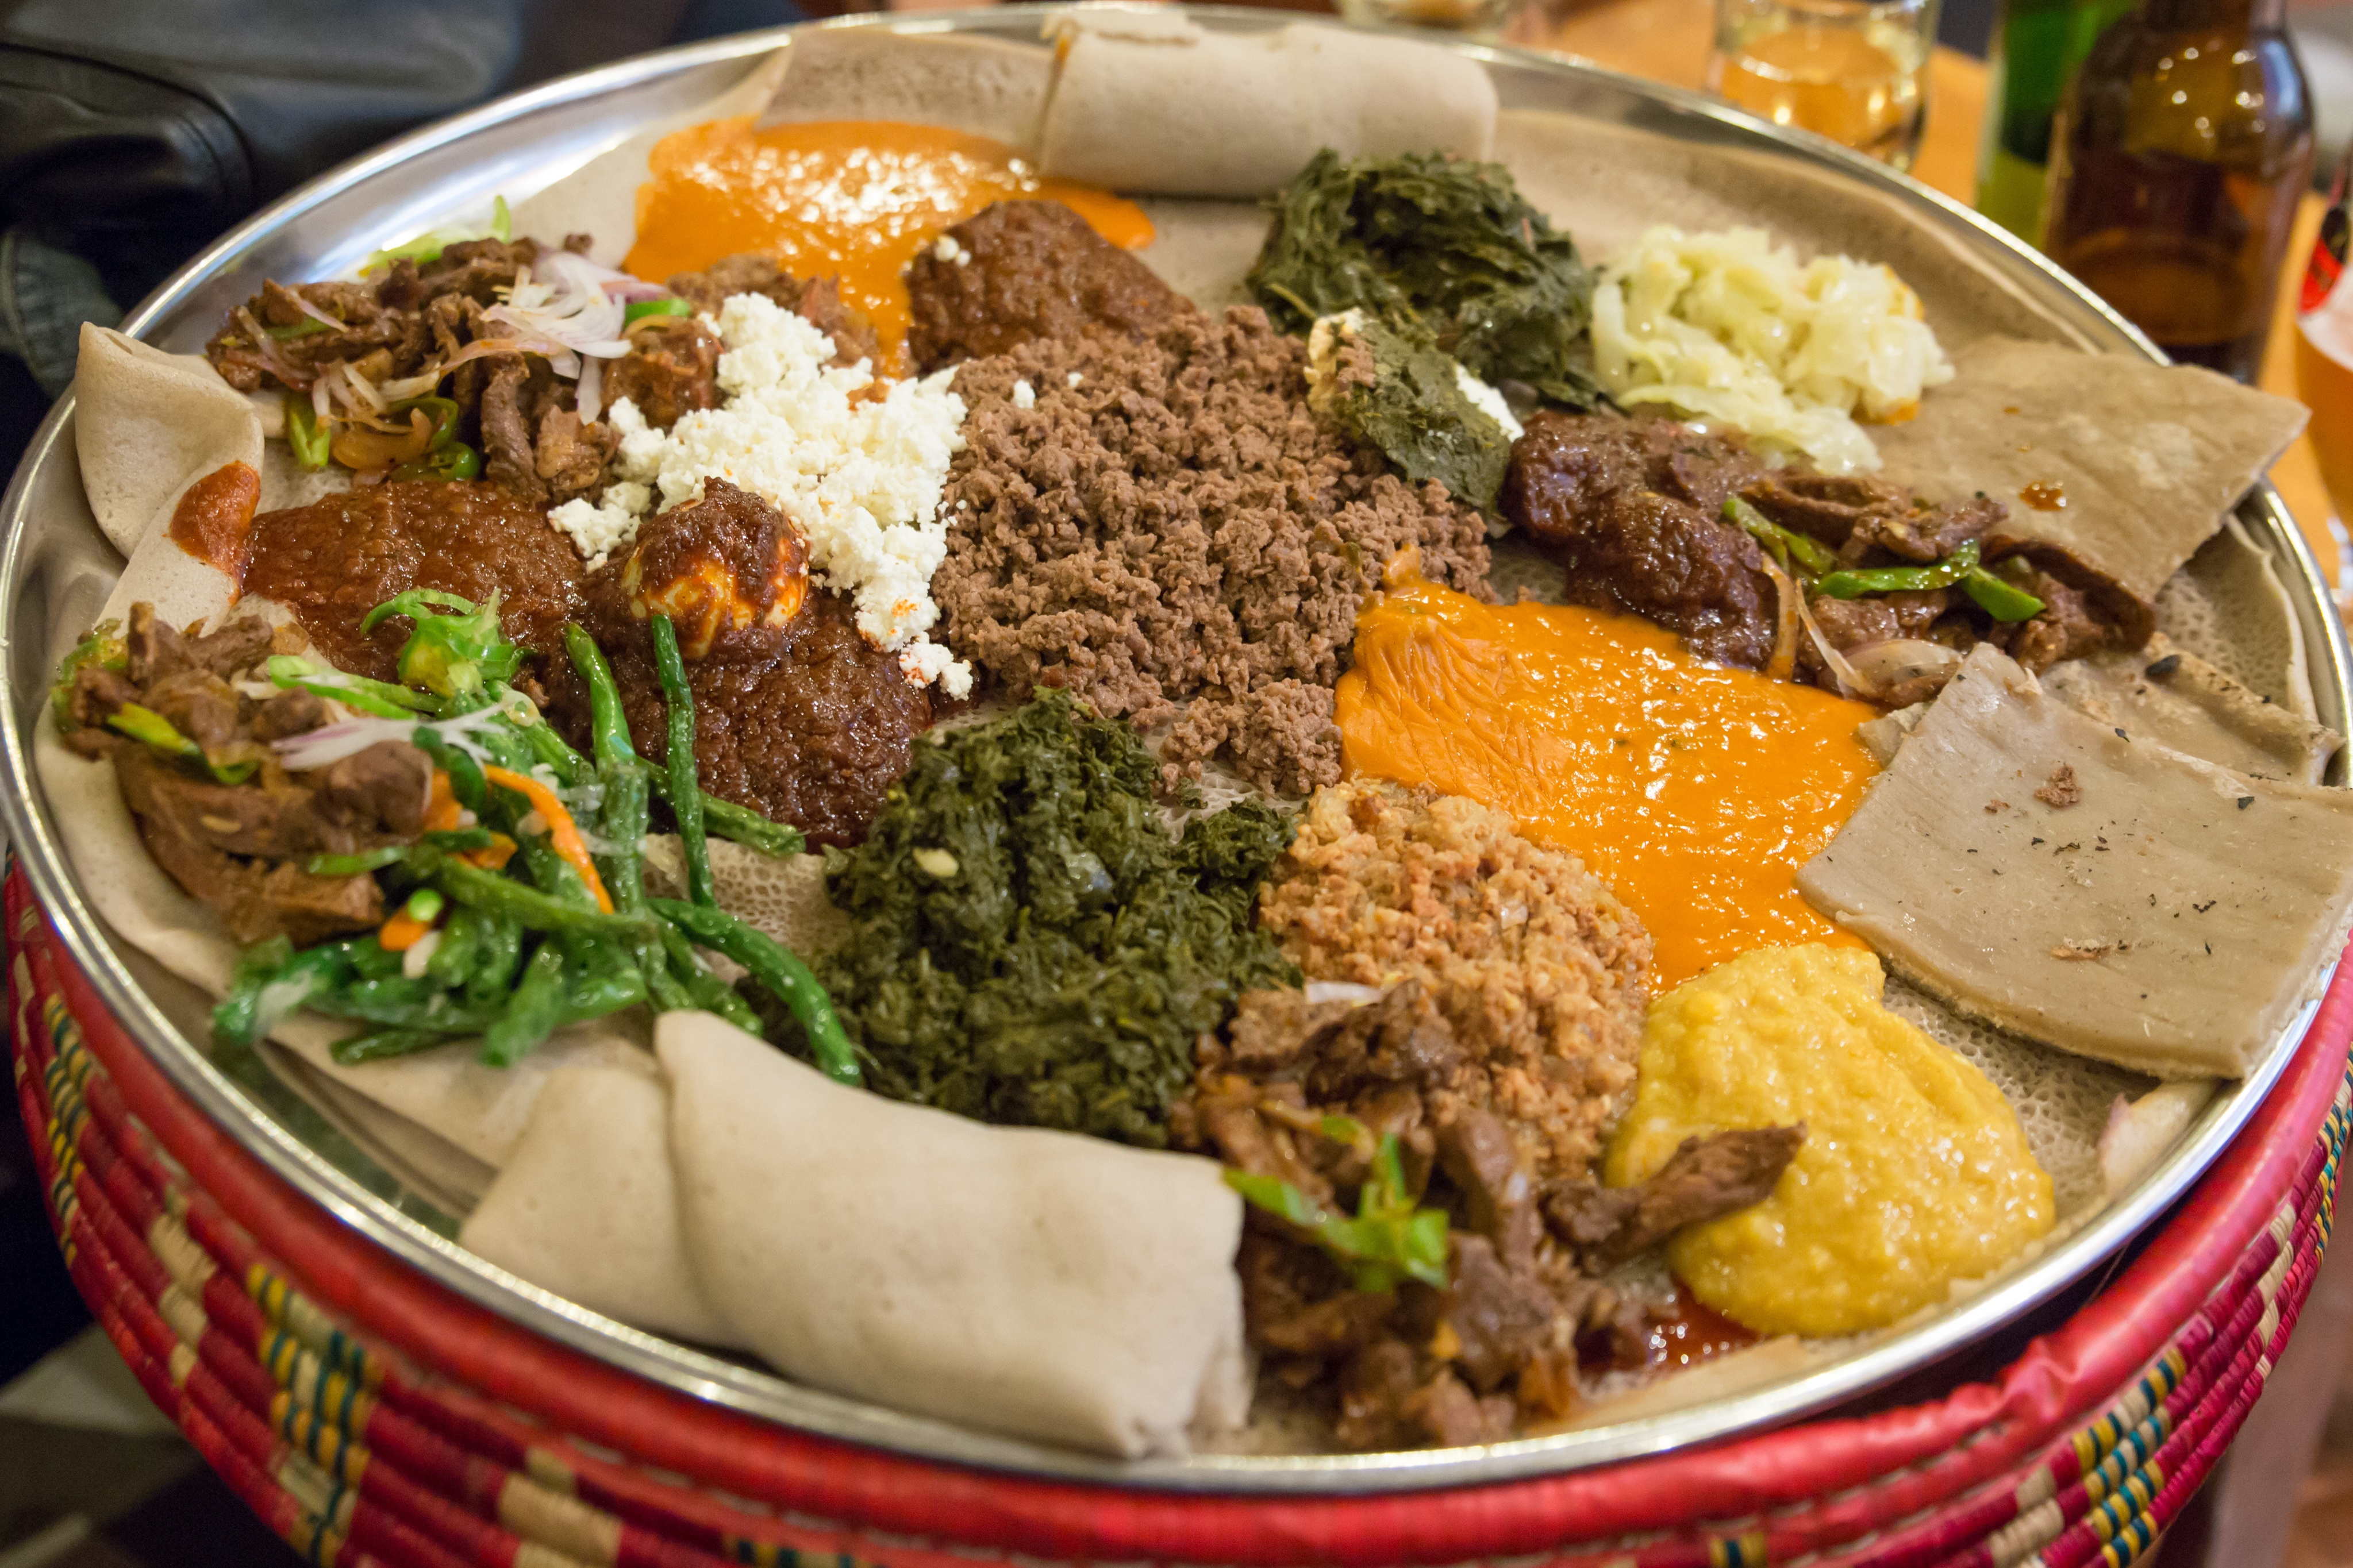 Injera and an Ethiopian Meal